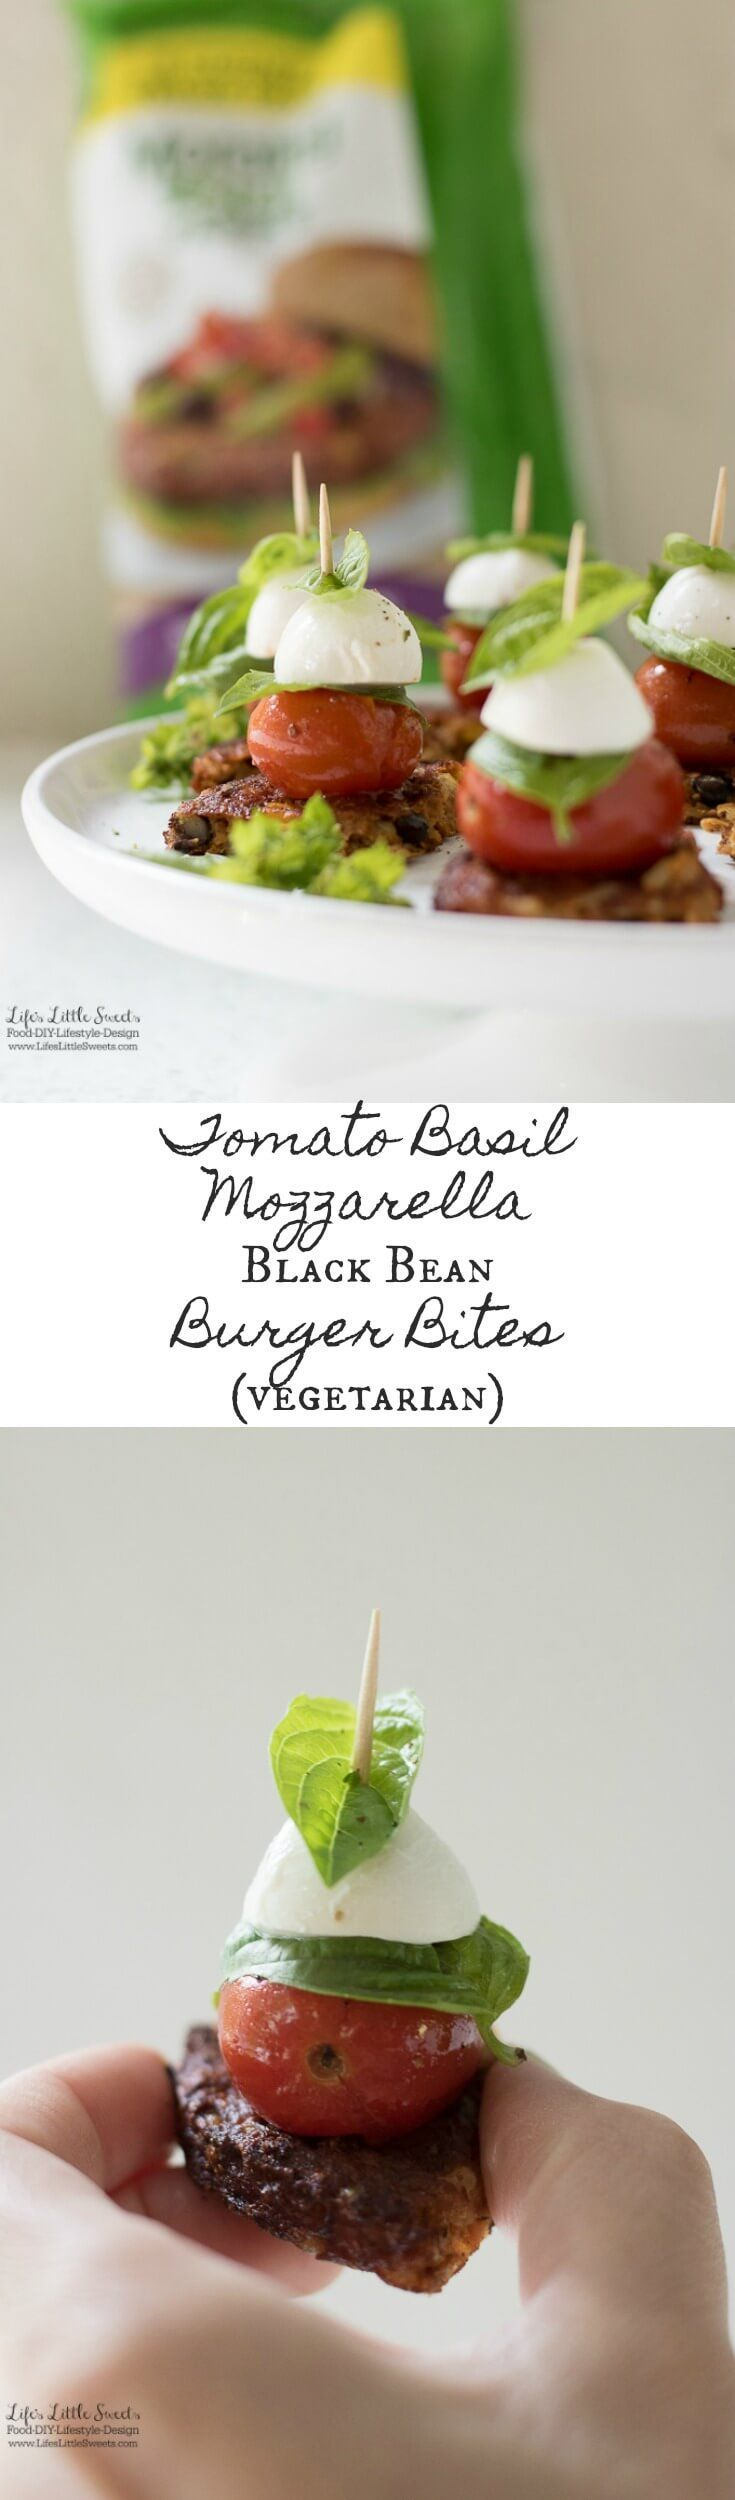 Tomato Basil Mozzarella Black Bean Burger Bites are a savory & delicious recipe perfect for the tailgating season. They are so easy to make with MorningStar Farms®️ Spicy Black Bean Burgers! (vegetarian) #TailgateWithATwist #SeasonalSolutions #CollectiveB